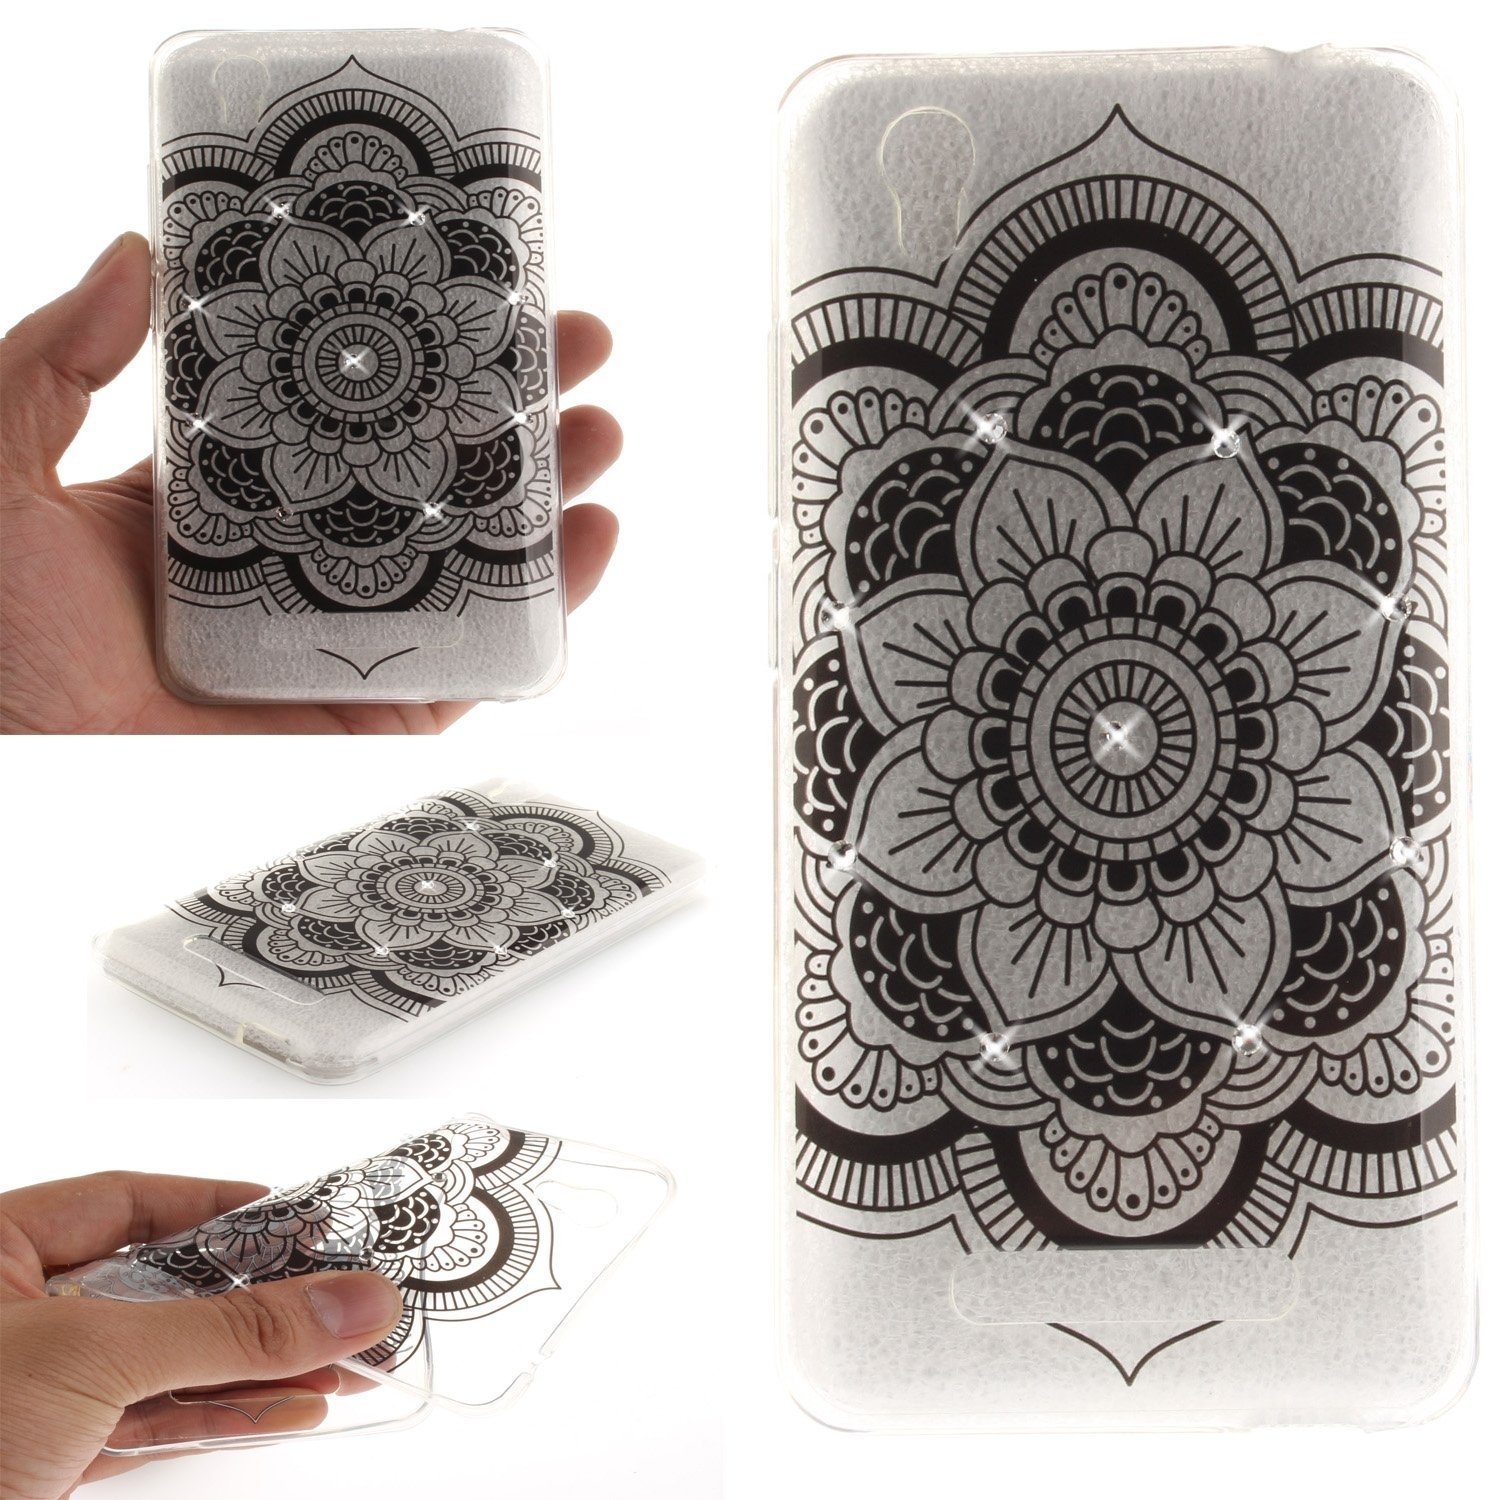 ZTE-Blade-A452-Black-Big-Flower-EC-Touch-Fashion-Style-Colourful-Painted